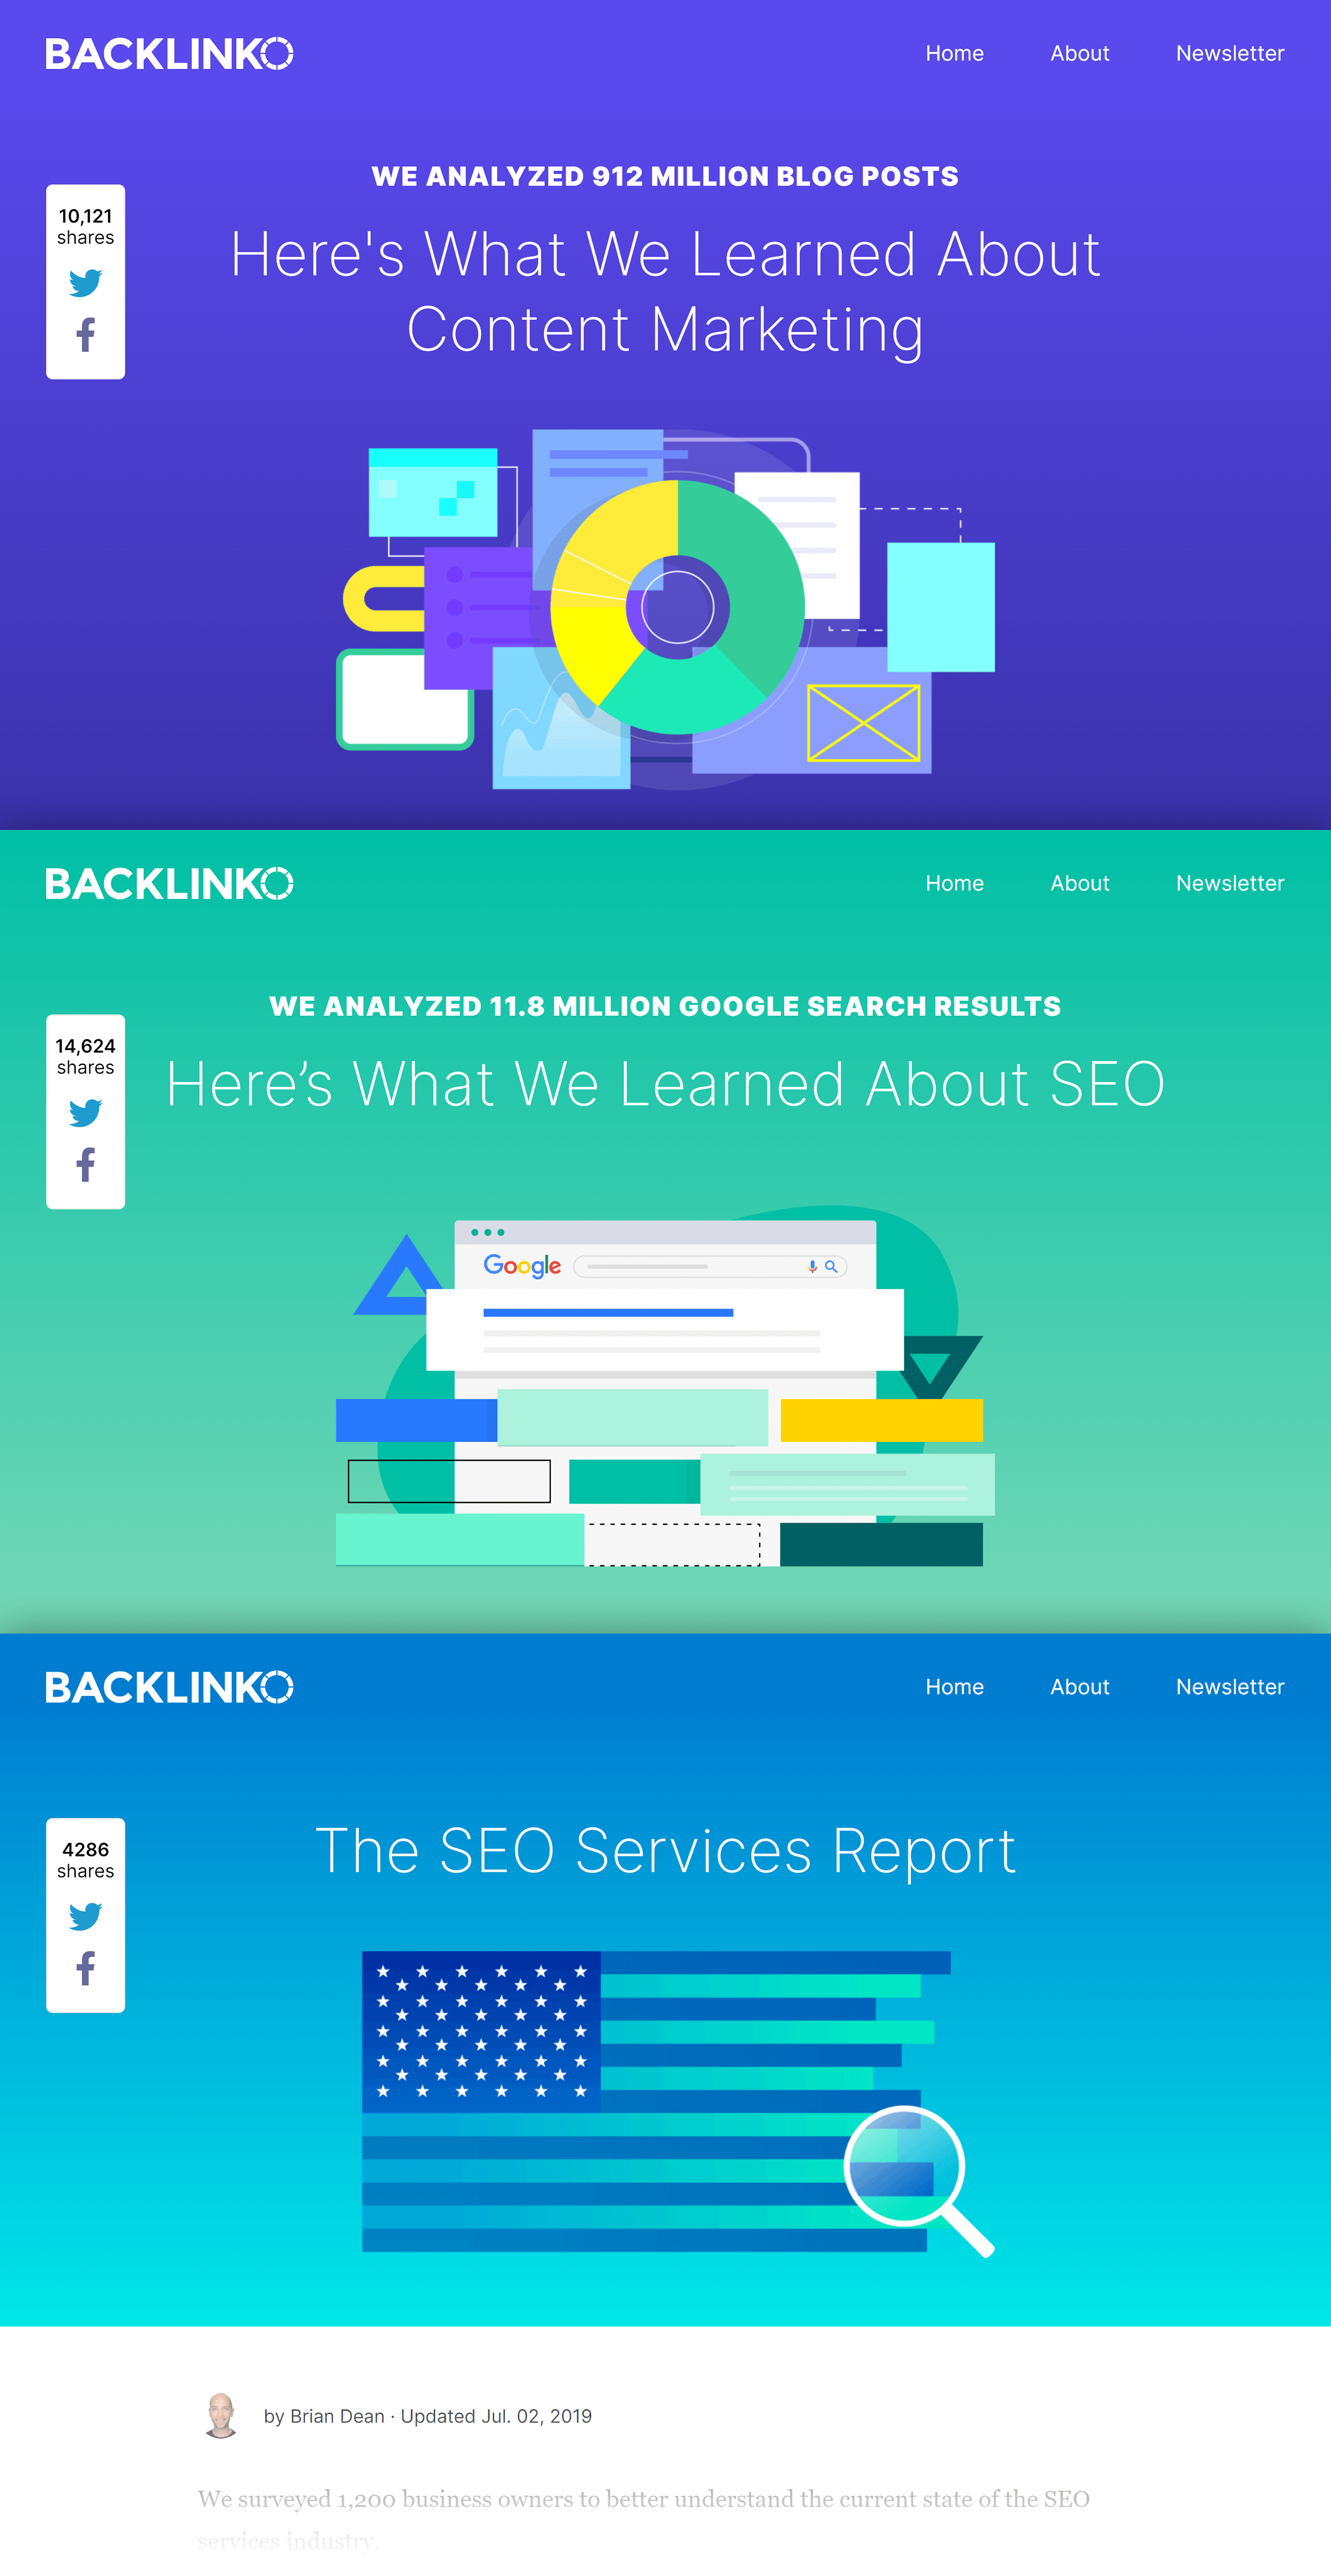 Backlinko – Research focused content